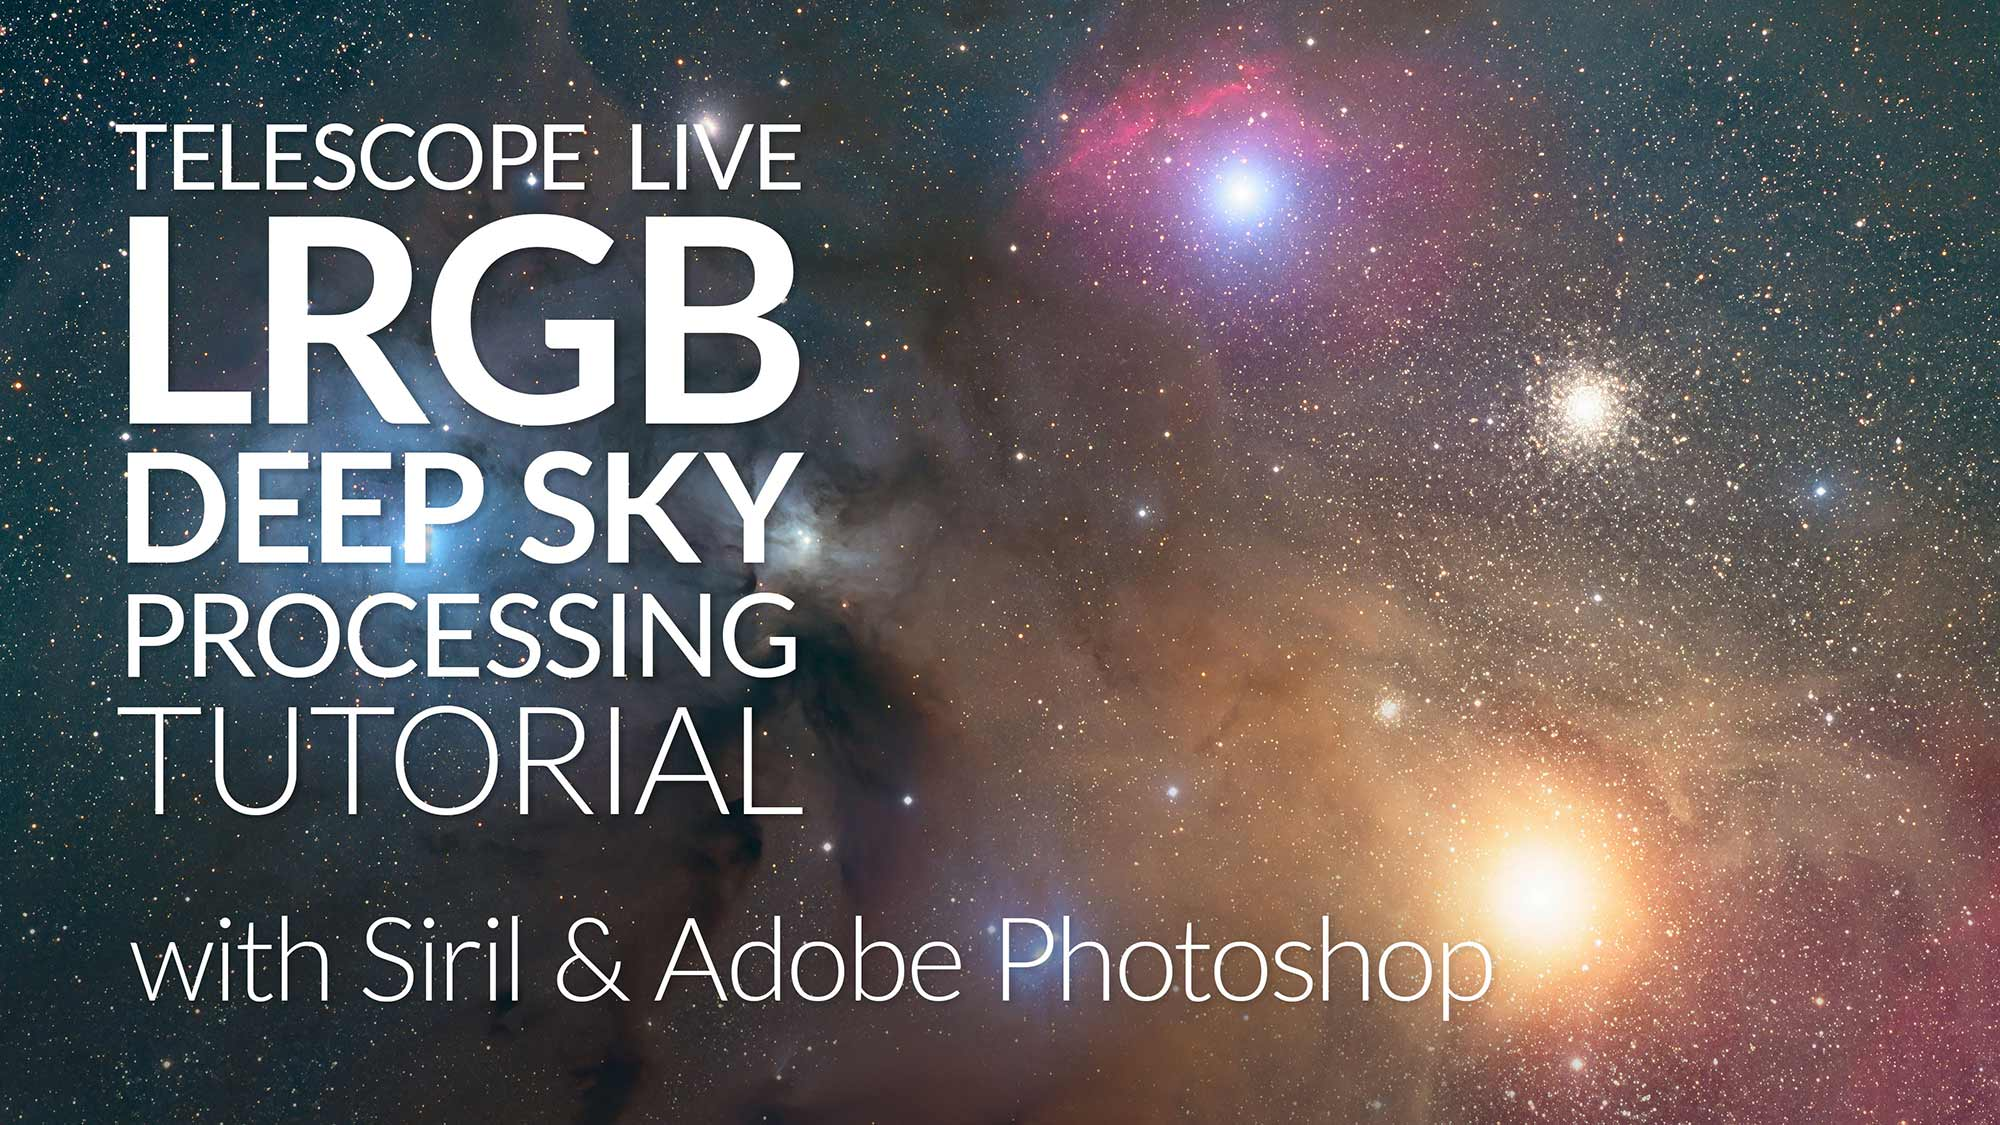 LRGB Deep Sky Astrophotography Processing Tutorial: Siril and Photoshop with Telescope Live Data